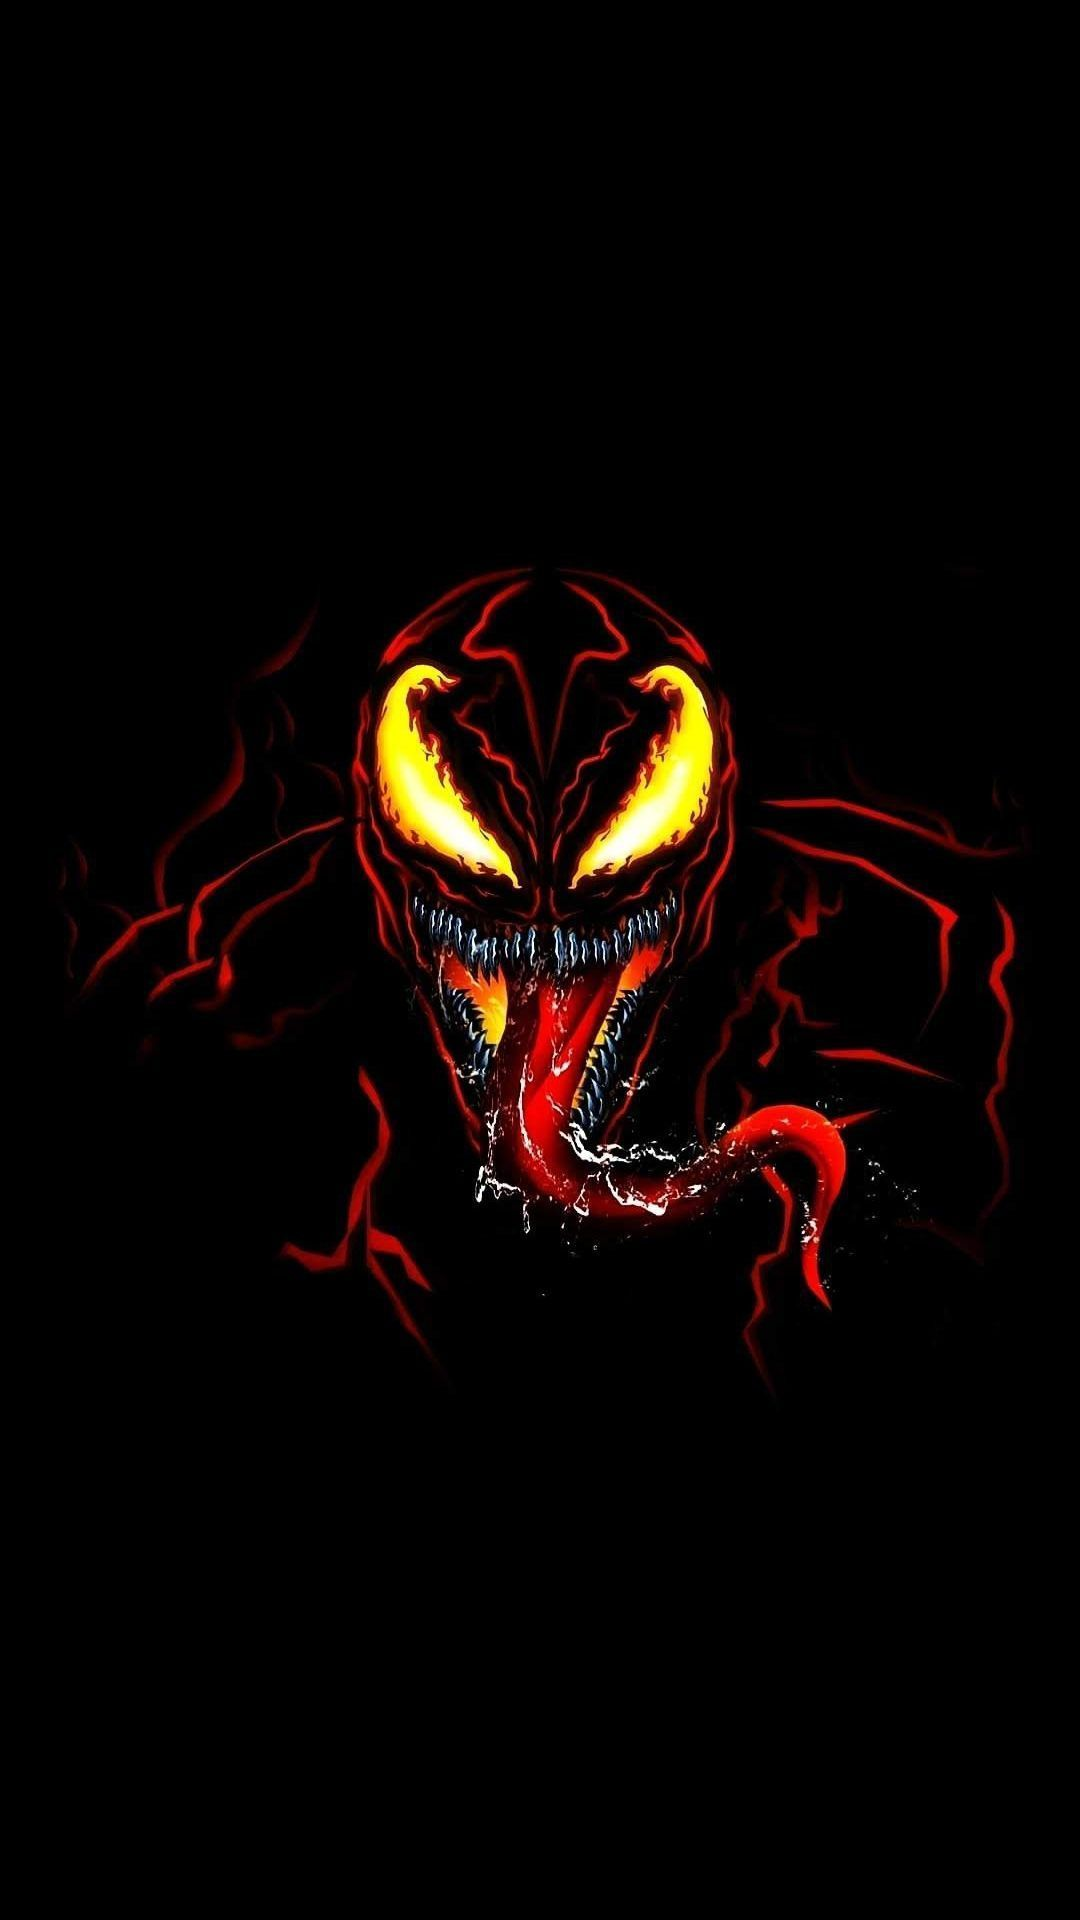 Venom Abstract Android Iphone Desktop Hd Backgrounds Wallpapers 1080p 4k 100211 Hdwallpa Marvel Iphone Wallpaper Marvel Paintings Marvel Wallpaper